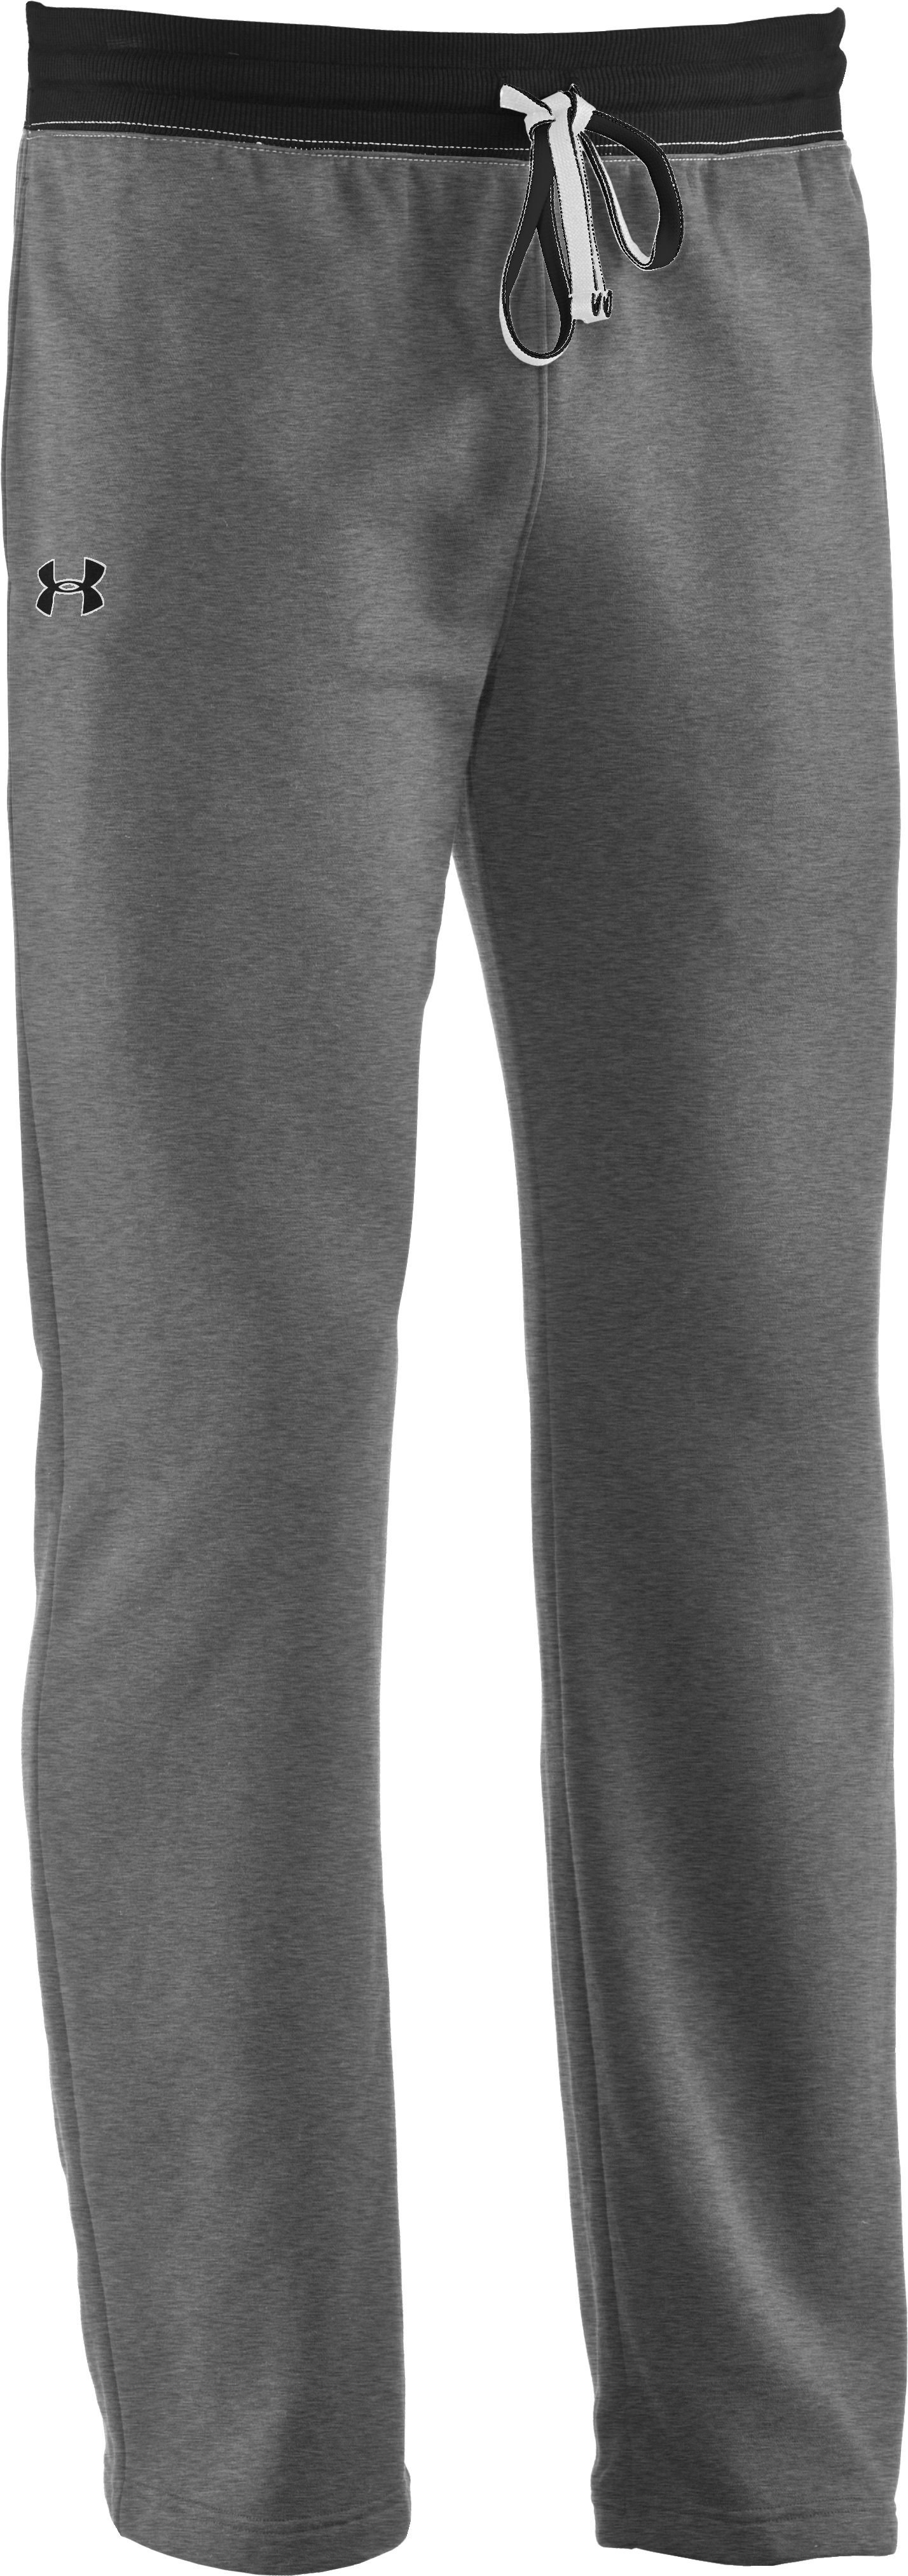 Men's Charged Cotton® Storm Transit Pants, True Gray Heather,